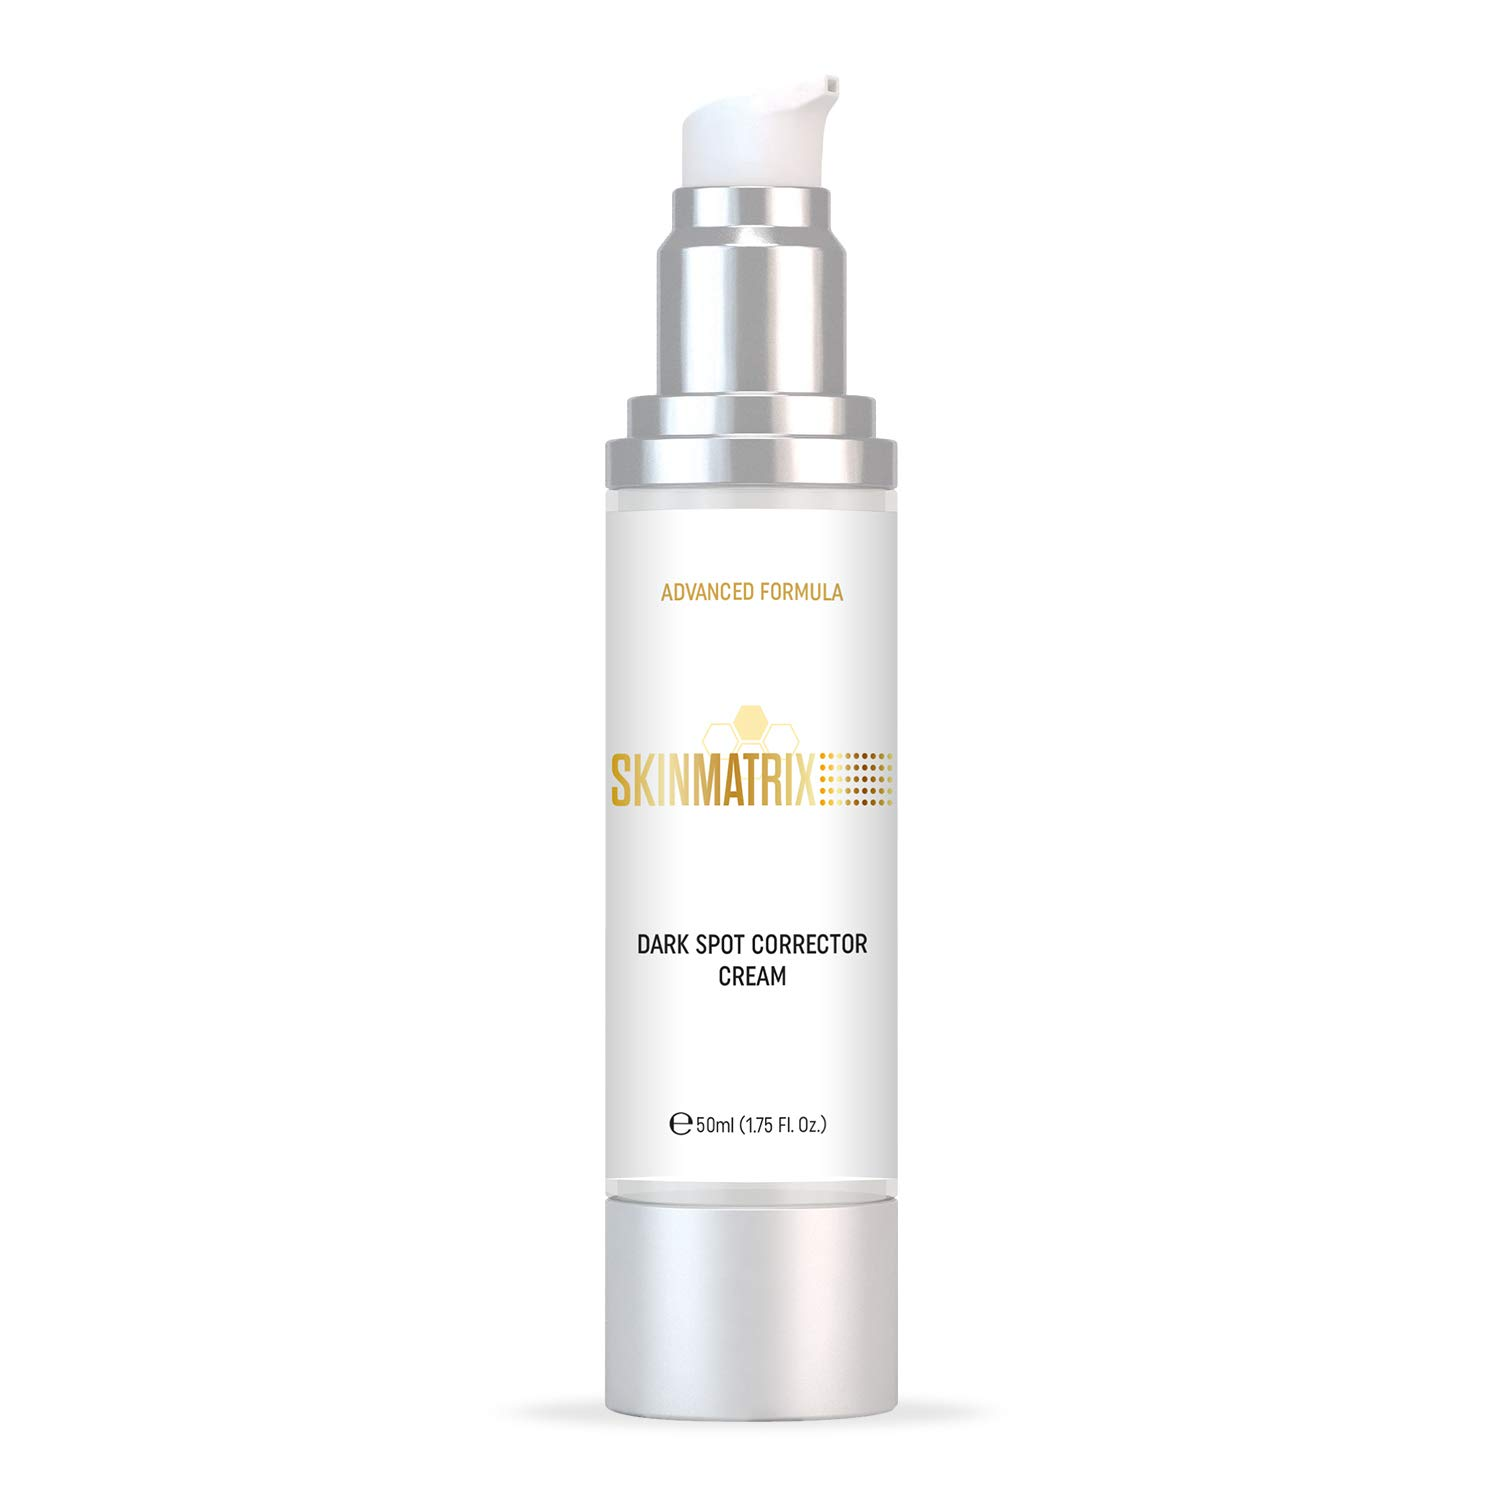 Dark Spot Corrector- Skin Brightening Cream Naturally Fades Skin Discoloration for Face & Body. Repairs Uneven Skin Tone & Complexion. Removes Age Spots, Freckles, & Acne Scars. No Harsh Chemicals.